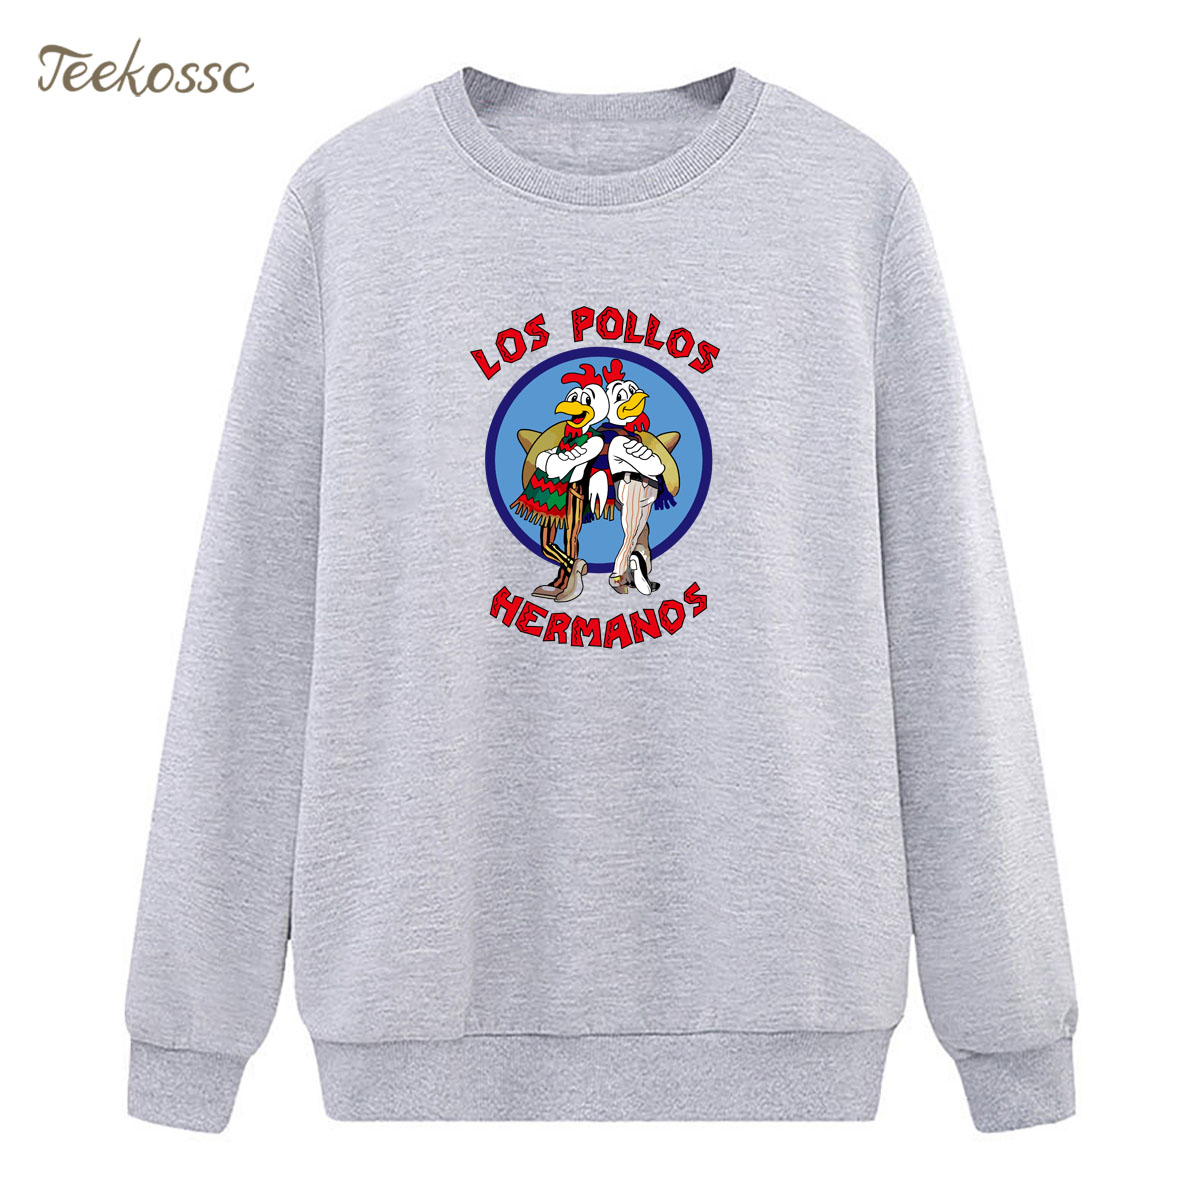 Breaking Bad Sweatshirt Print LOS POLLOS Hermanos Hoodie Winter Autumn Women Lasdies Pullover Fleece Chicken Brothers Streetwear